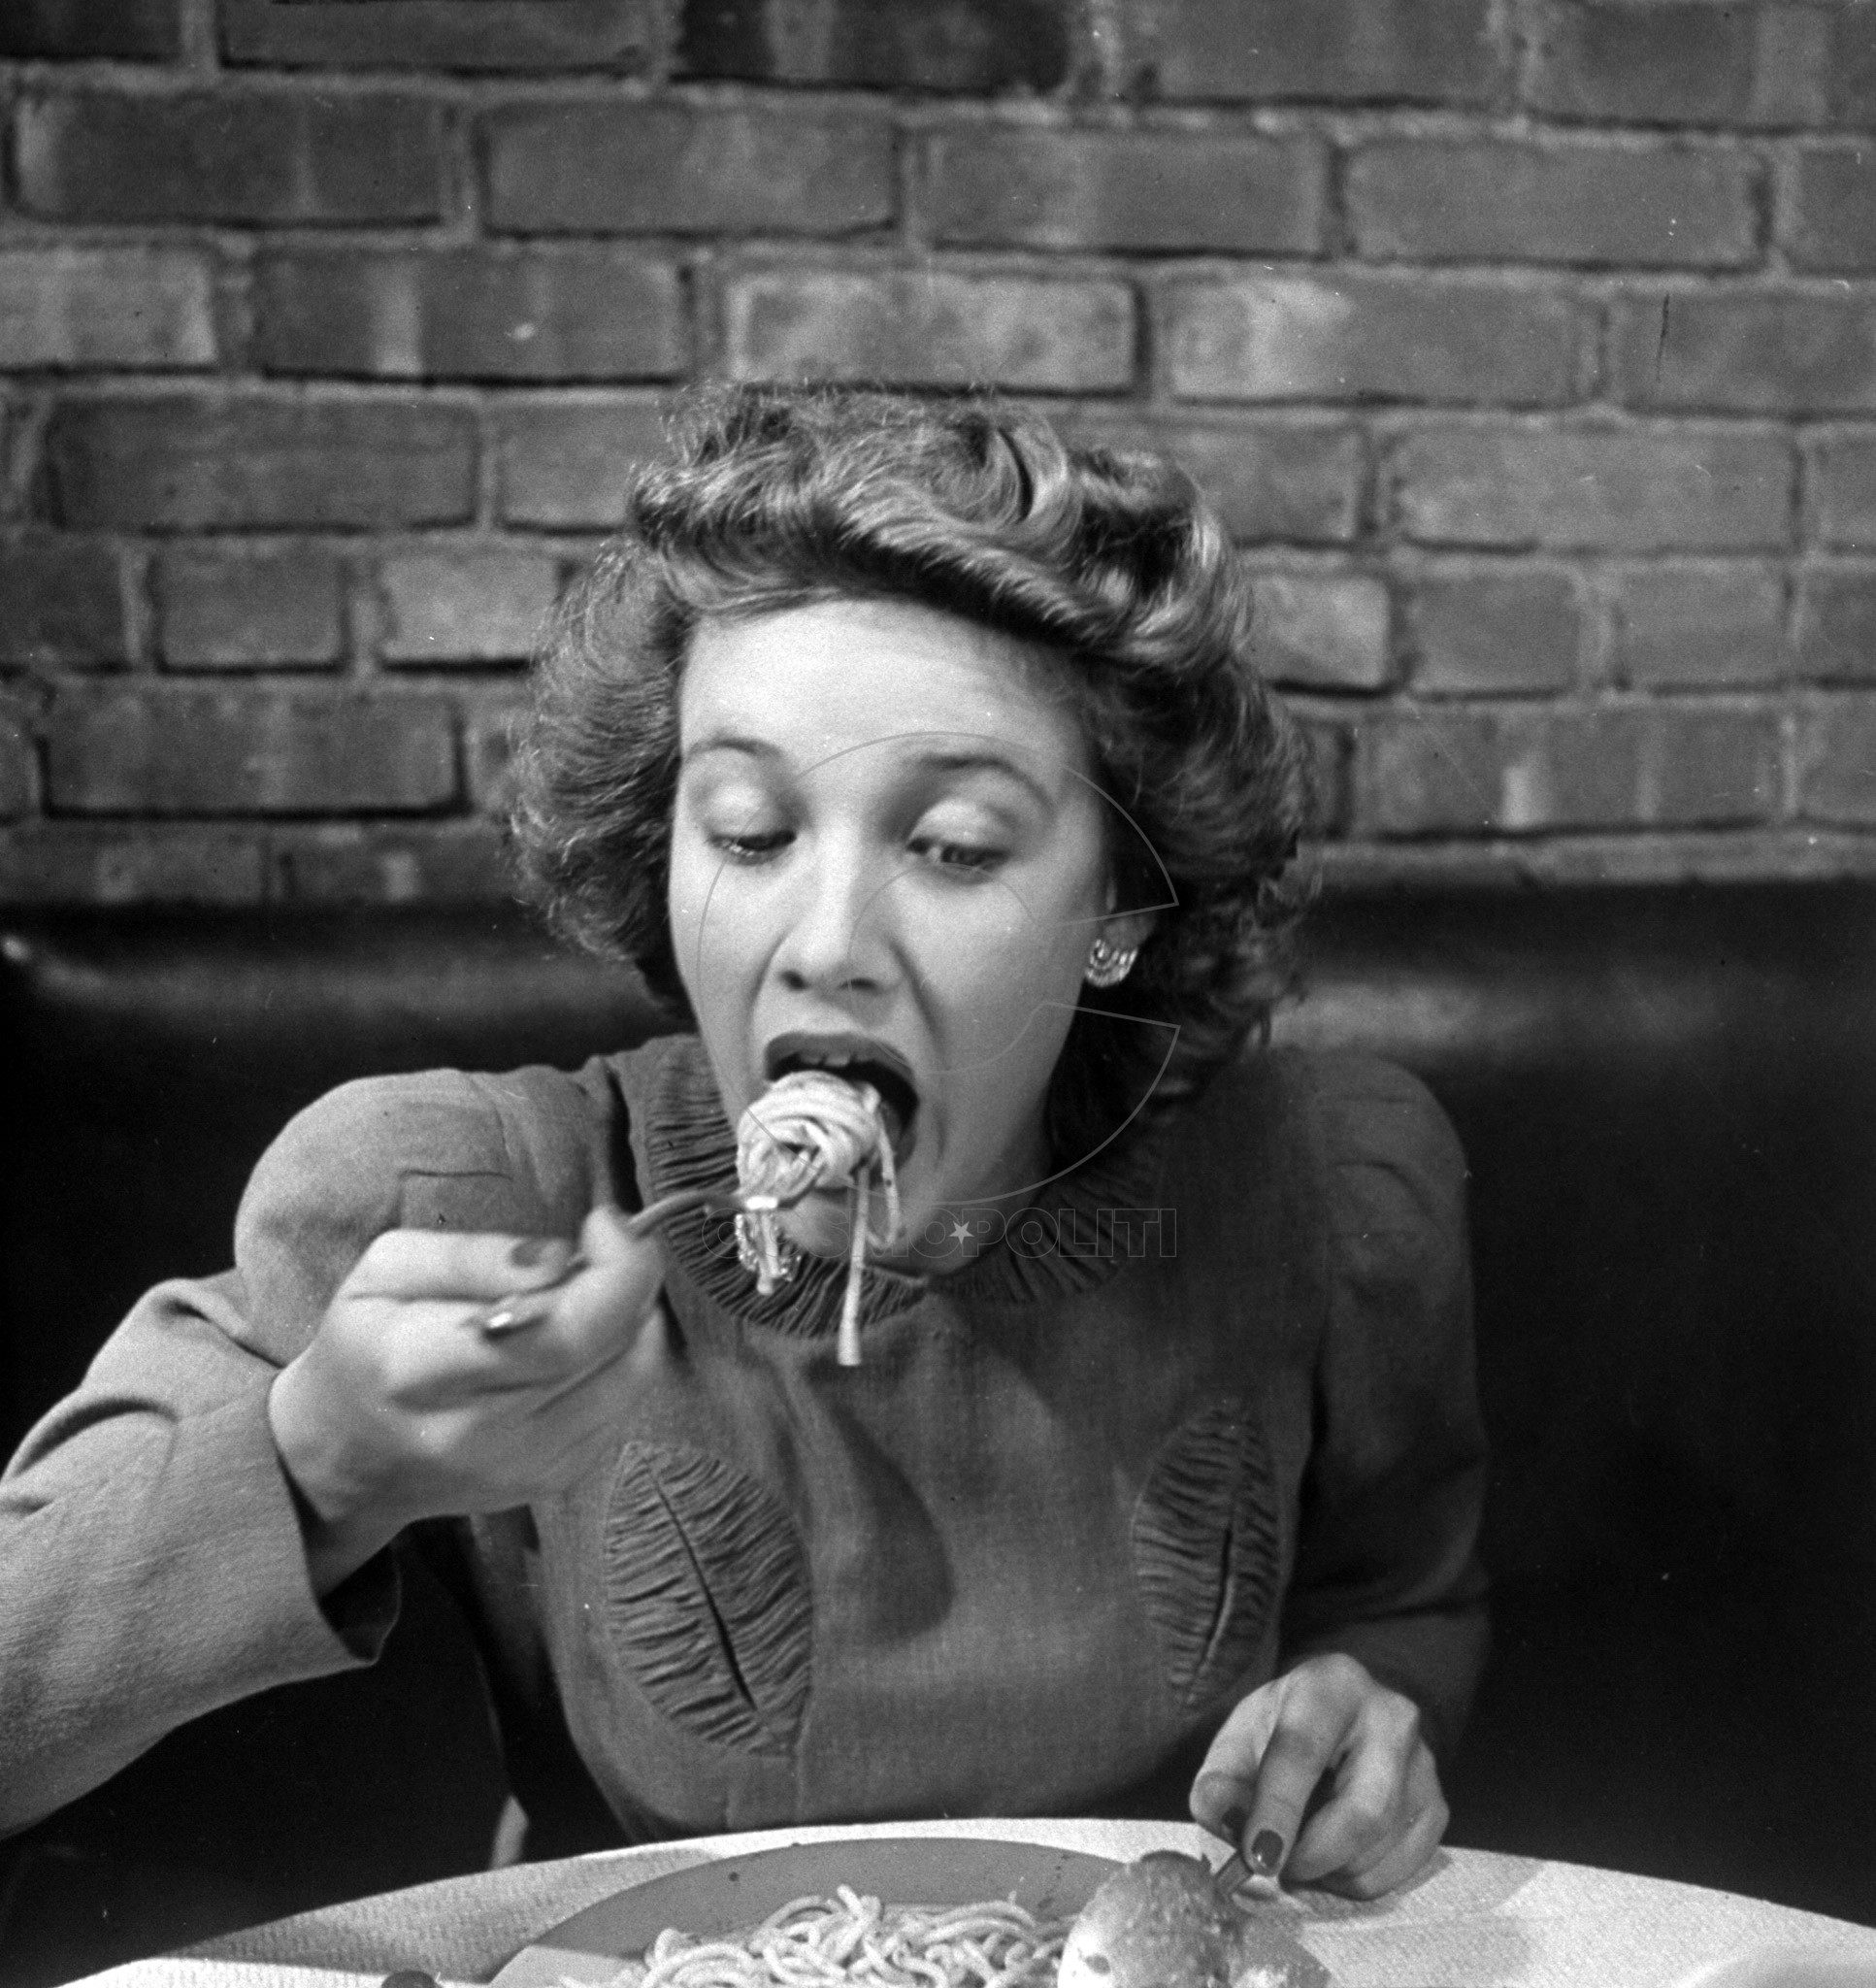 Woman eating spaghetti in restaurant. #4 of sequence of 6.